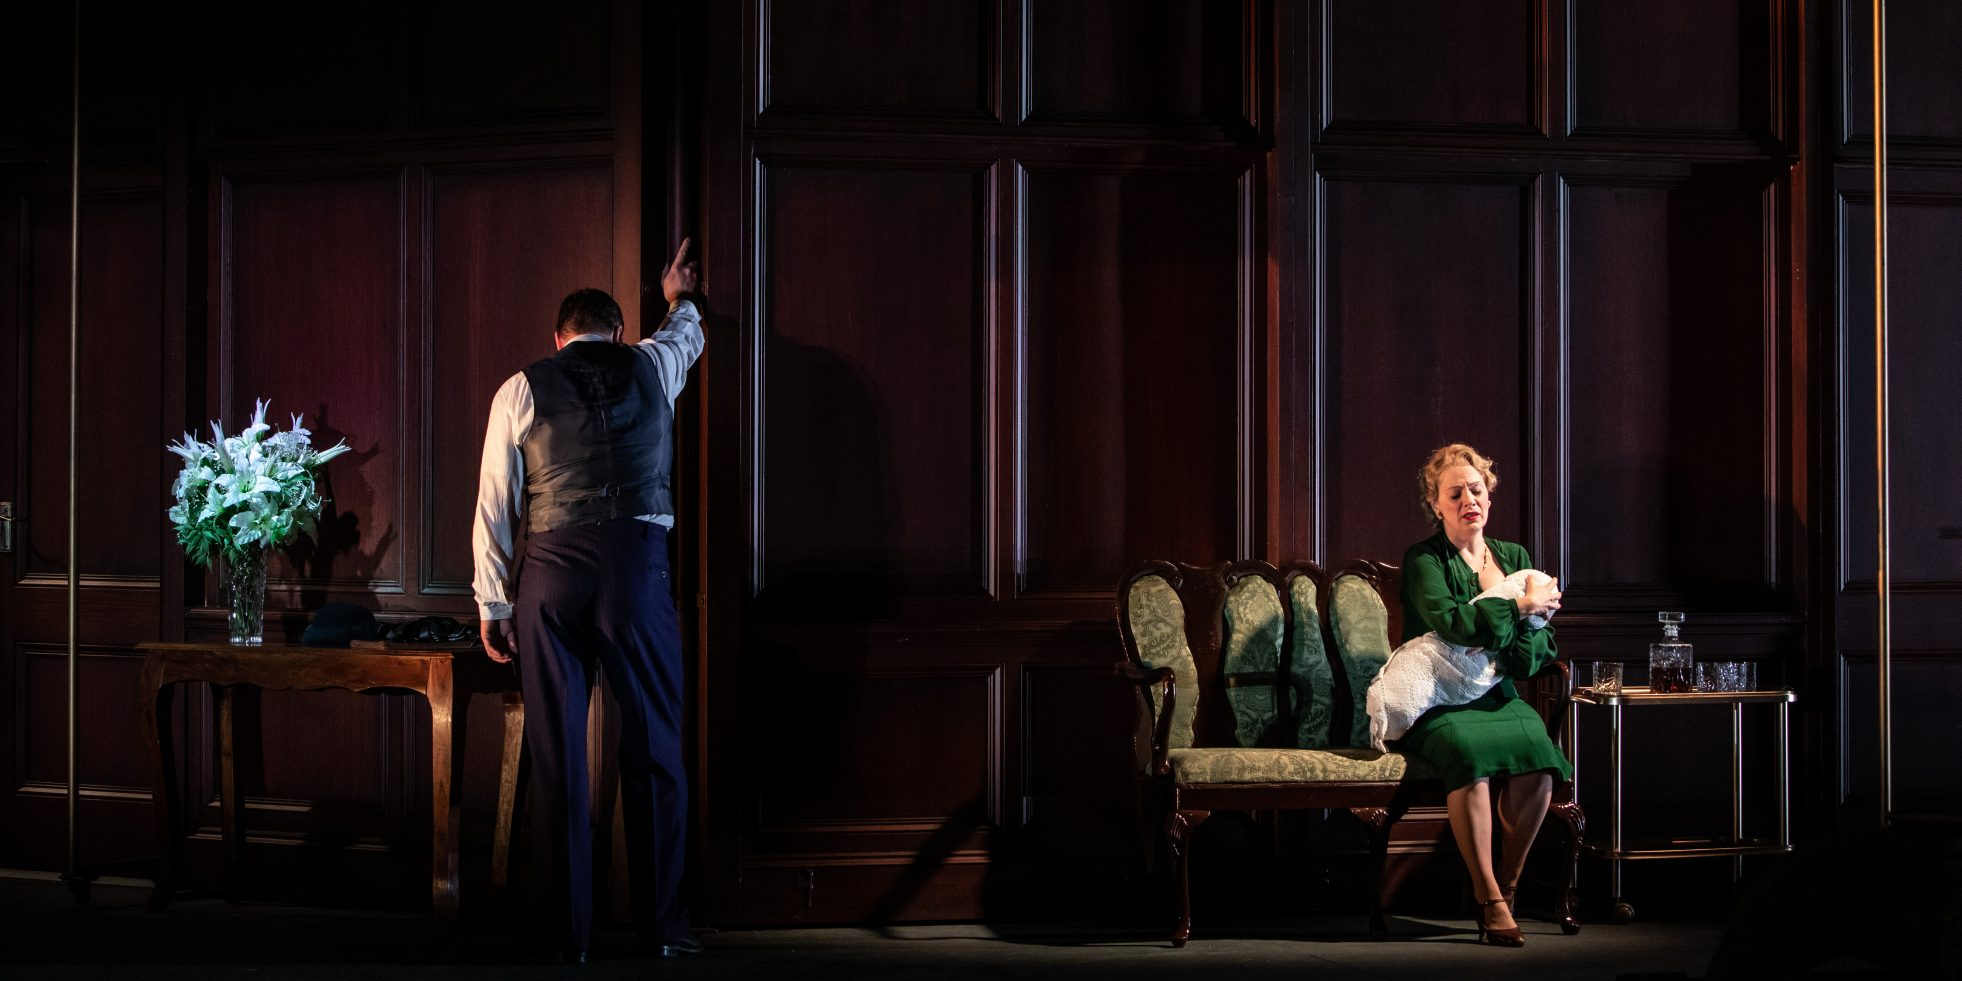 Opera Holland Park brings Un ballo in maschera to you in a new film with City of London Sinfonia on 2 June, 7.30pm